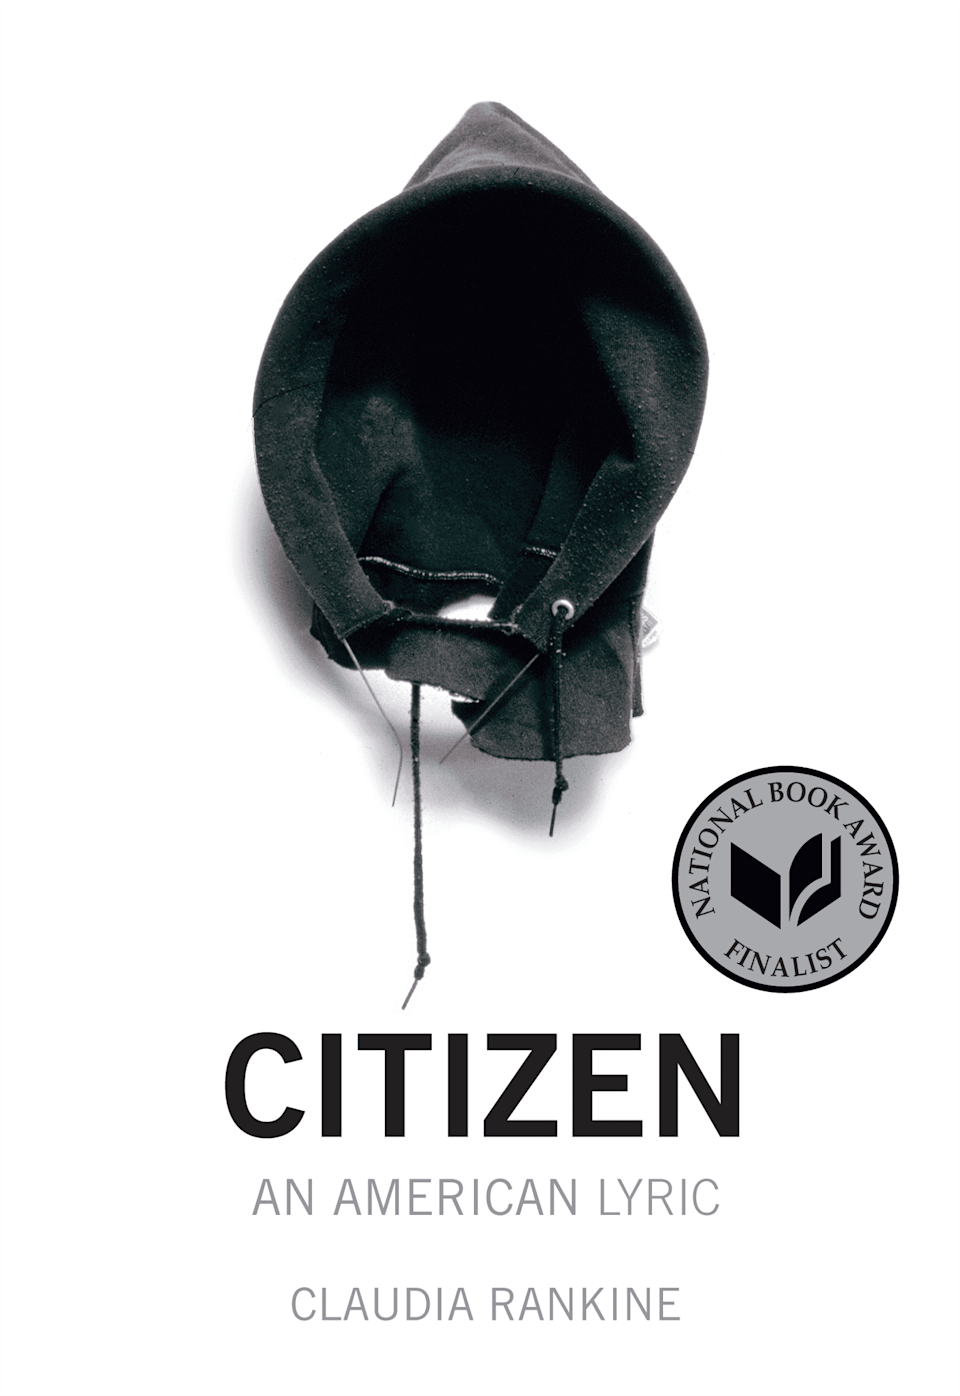 """<p>I really believe Claudia Rankine's <a href=""""https://bookshop.org/books/citizen-an-american-lyric/9781555976903"""" class=""""link rapid-noclick-resp"""" rel=""""nofollow noopener"""" target=""""_blank"""" data-ylk=""""slk:Citizen""""><strong>Citizen</strong></a> is simply one of the most remarkable achievements in modern American poetry. Her reflection on the ways racism drives wedges between people and incites violence and pain will often startle tears to your eyes, like this passage from this book-length poem did for me:</p> <p><em>Certain moments send adrenaline to the heart, dry out the tongue, and clog the lungs. Like thunder they drown you in sound, no, like lightning they strike you across the larynx. Cough. After it happened I was at a loss for words. Haven't you said this yourself? Haven't you said this to a close friend who early in your friendship, when distracted, would call you by the name of her black housekeeper? You assumed you two were the only black people in her life. Eventually she stopped doing this, though she never acknowledged her slippage. And you never called her on it (why not?) and yet, you don't forget. If this were a domestic tragedy, and it might well be, this would be your fatal flaw - your memory, vessel of your feelings. Do you feel hurt because it's the """"all black people look the same"""" moment, or because you are being confused with another after being so close to this other?</em></p>"""